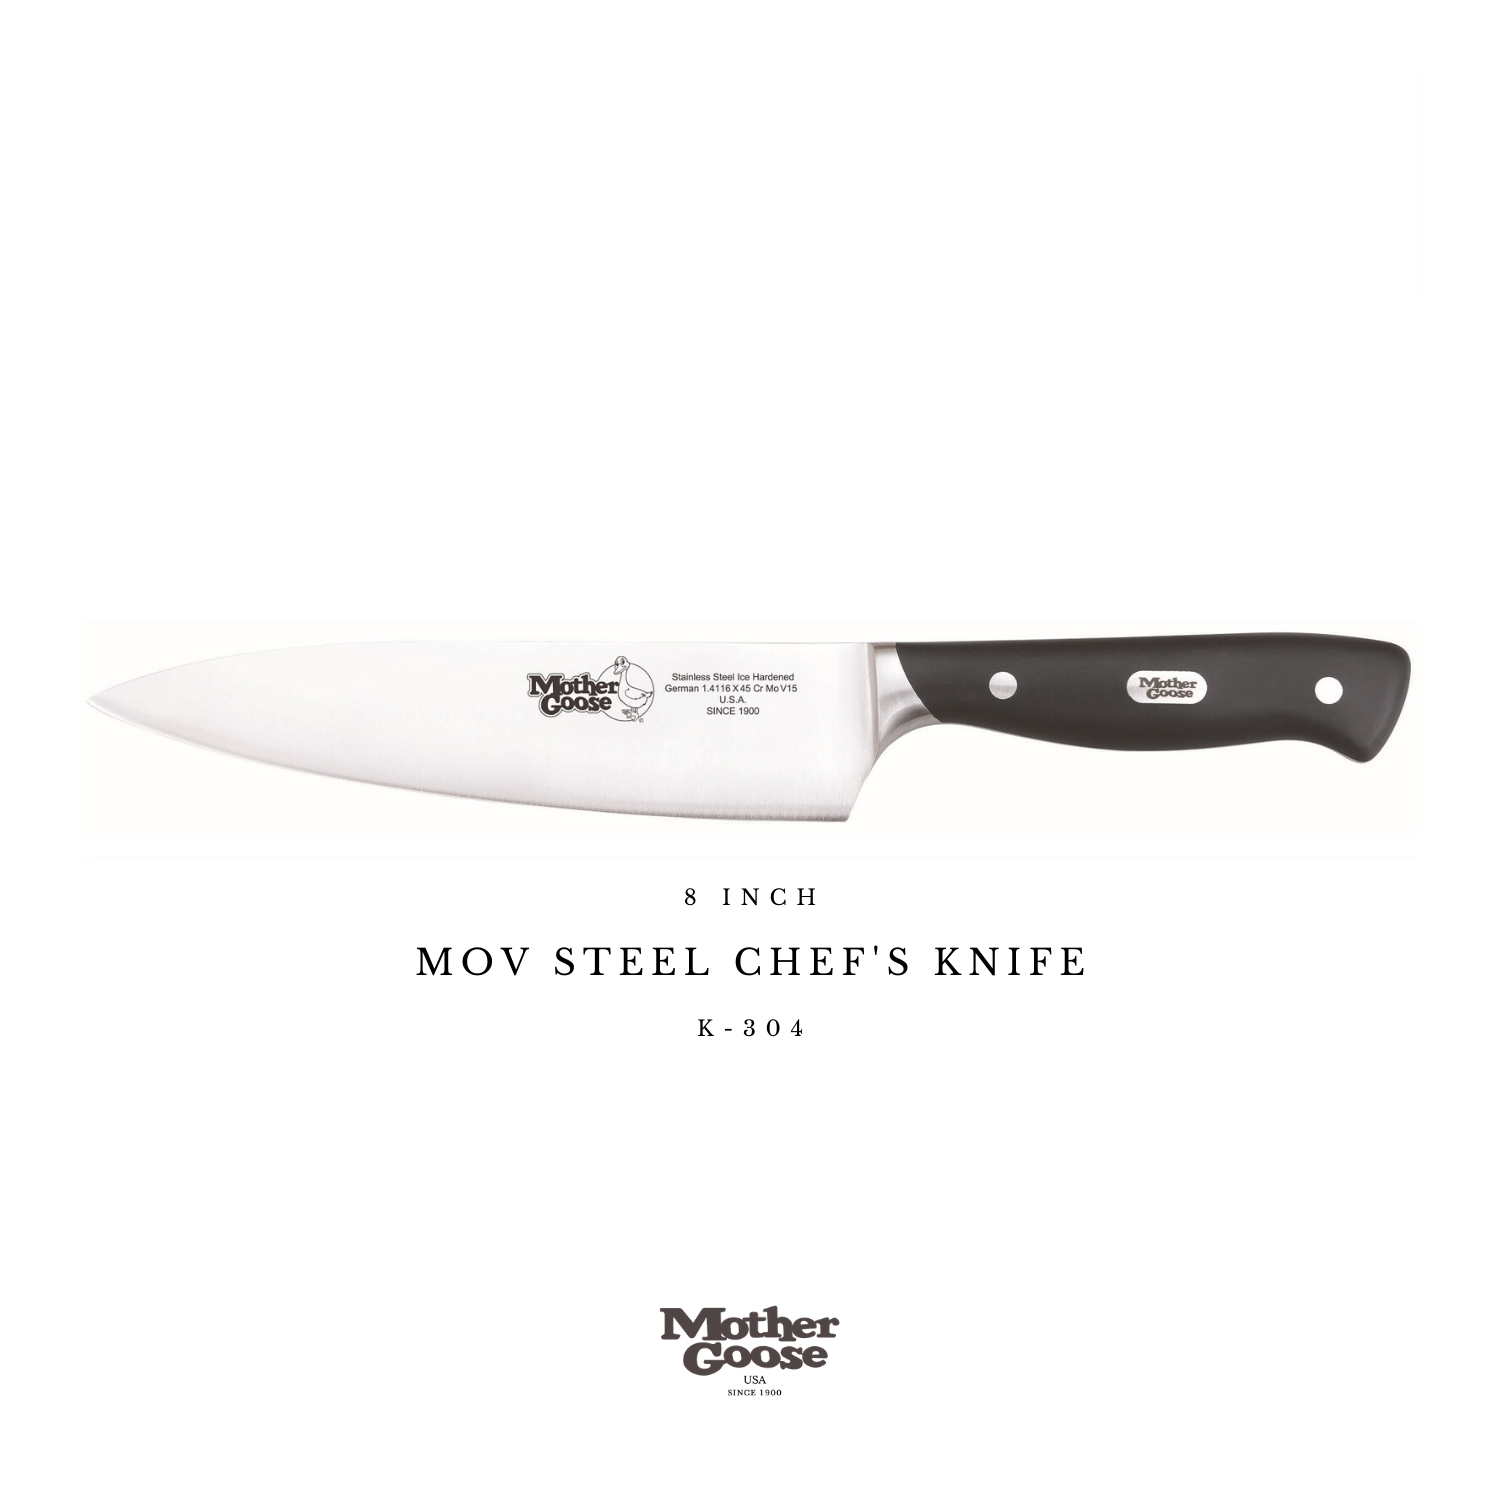 MOV STEEL CHEF'S KNIFE 8 INCH